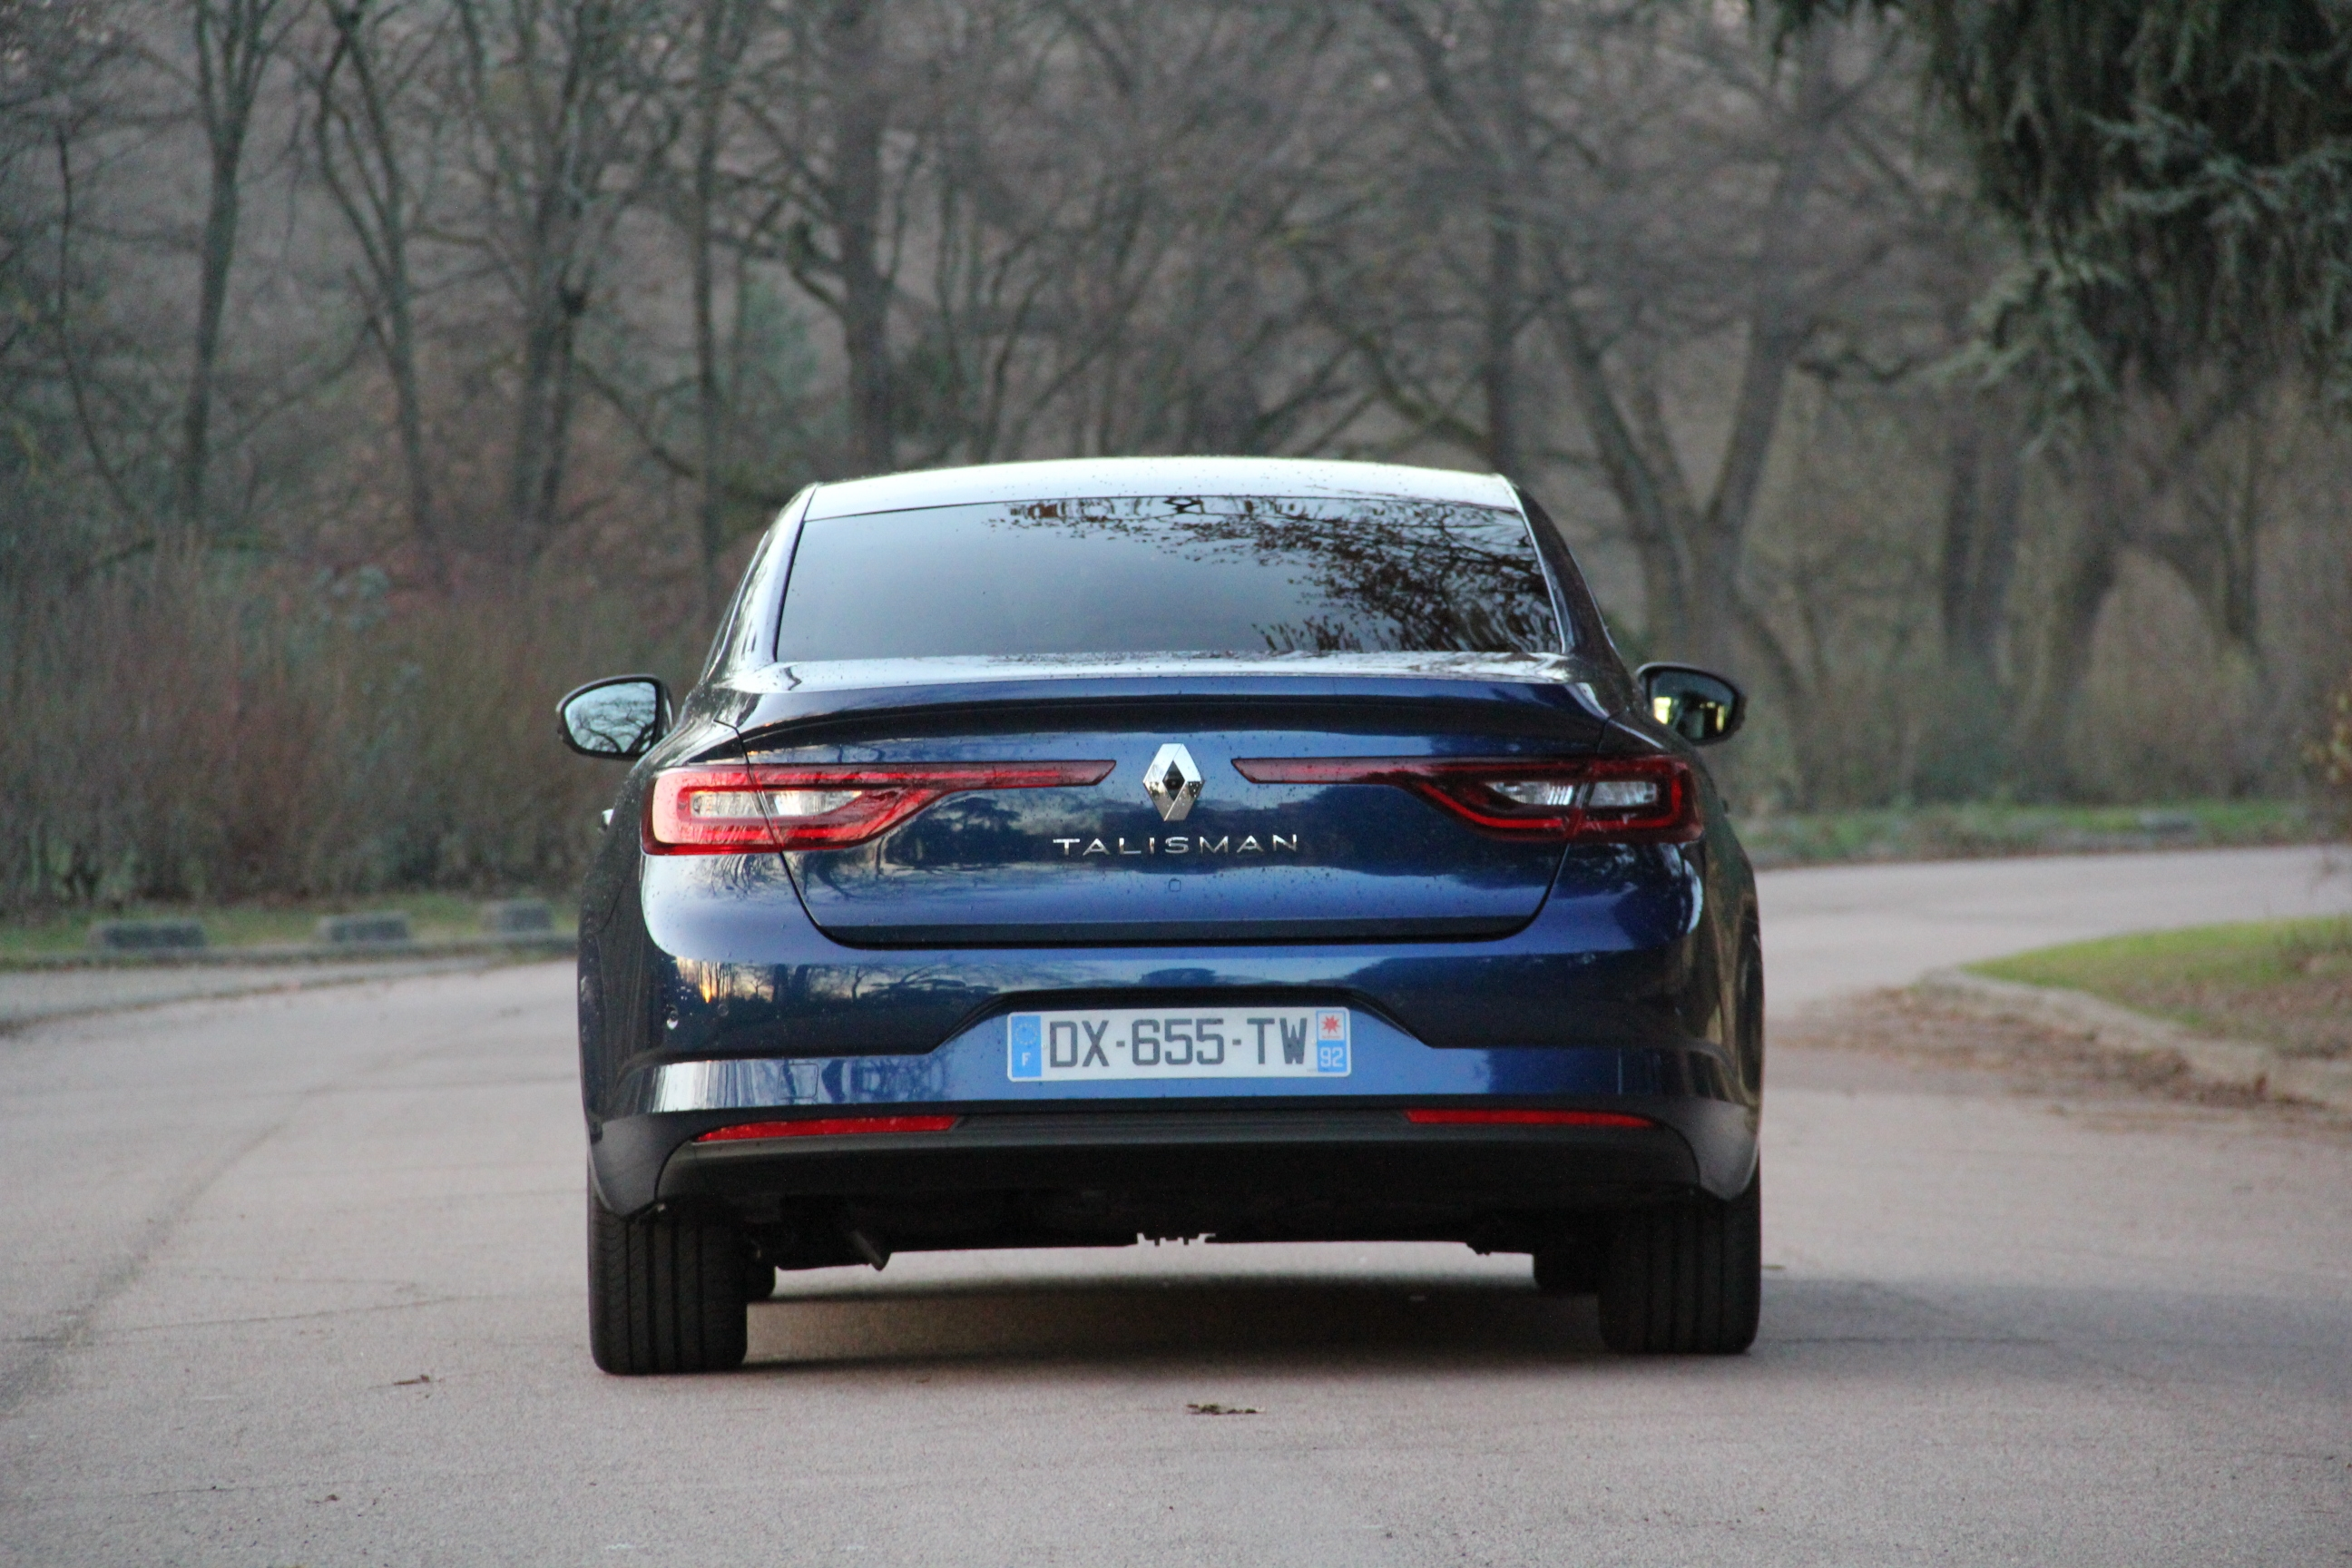 essai renault talisman 1 5 dci 110 le chameau de la famille. Black Bedroom Furniture Sets. Home Design Ideas